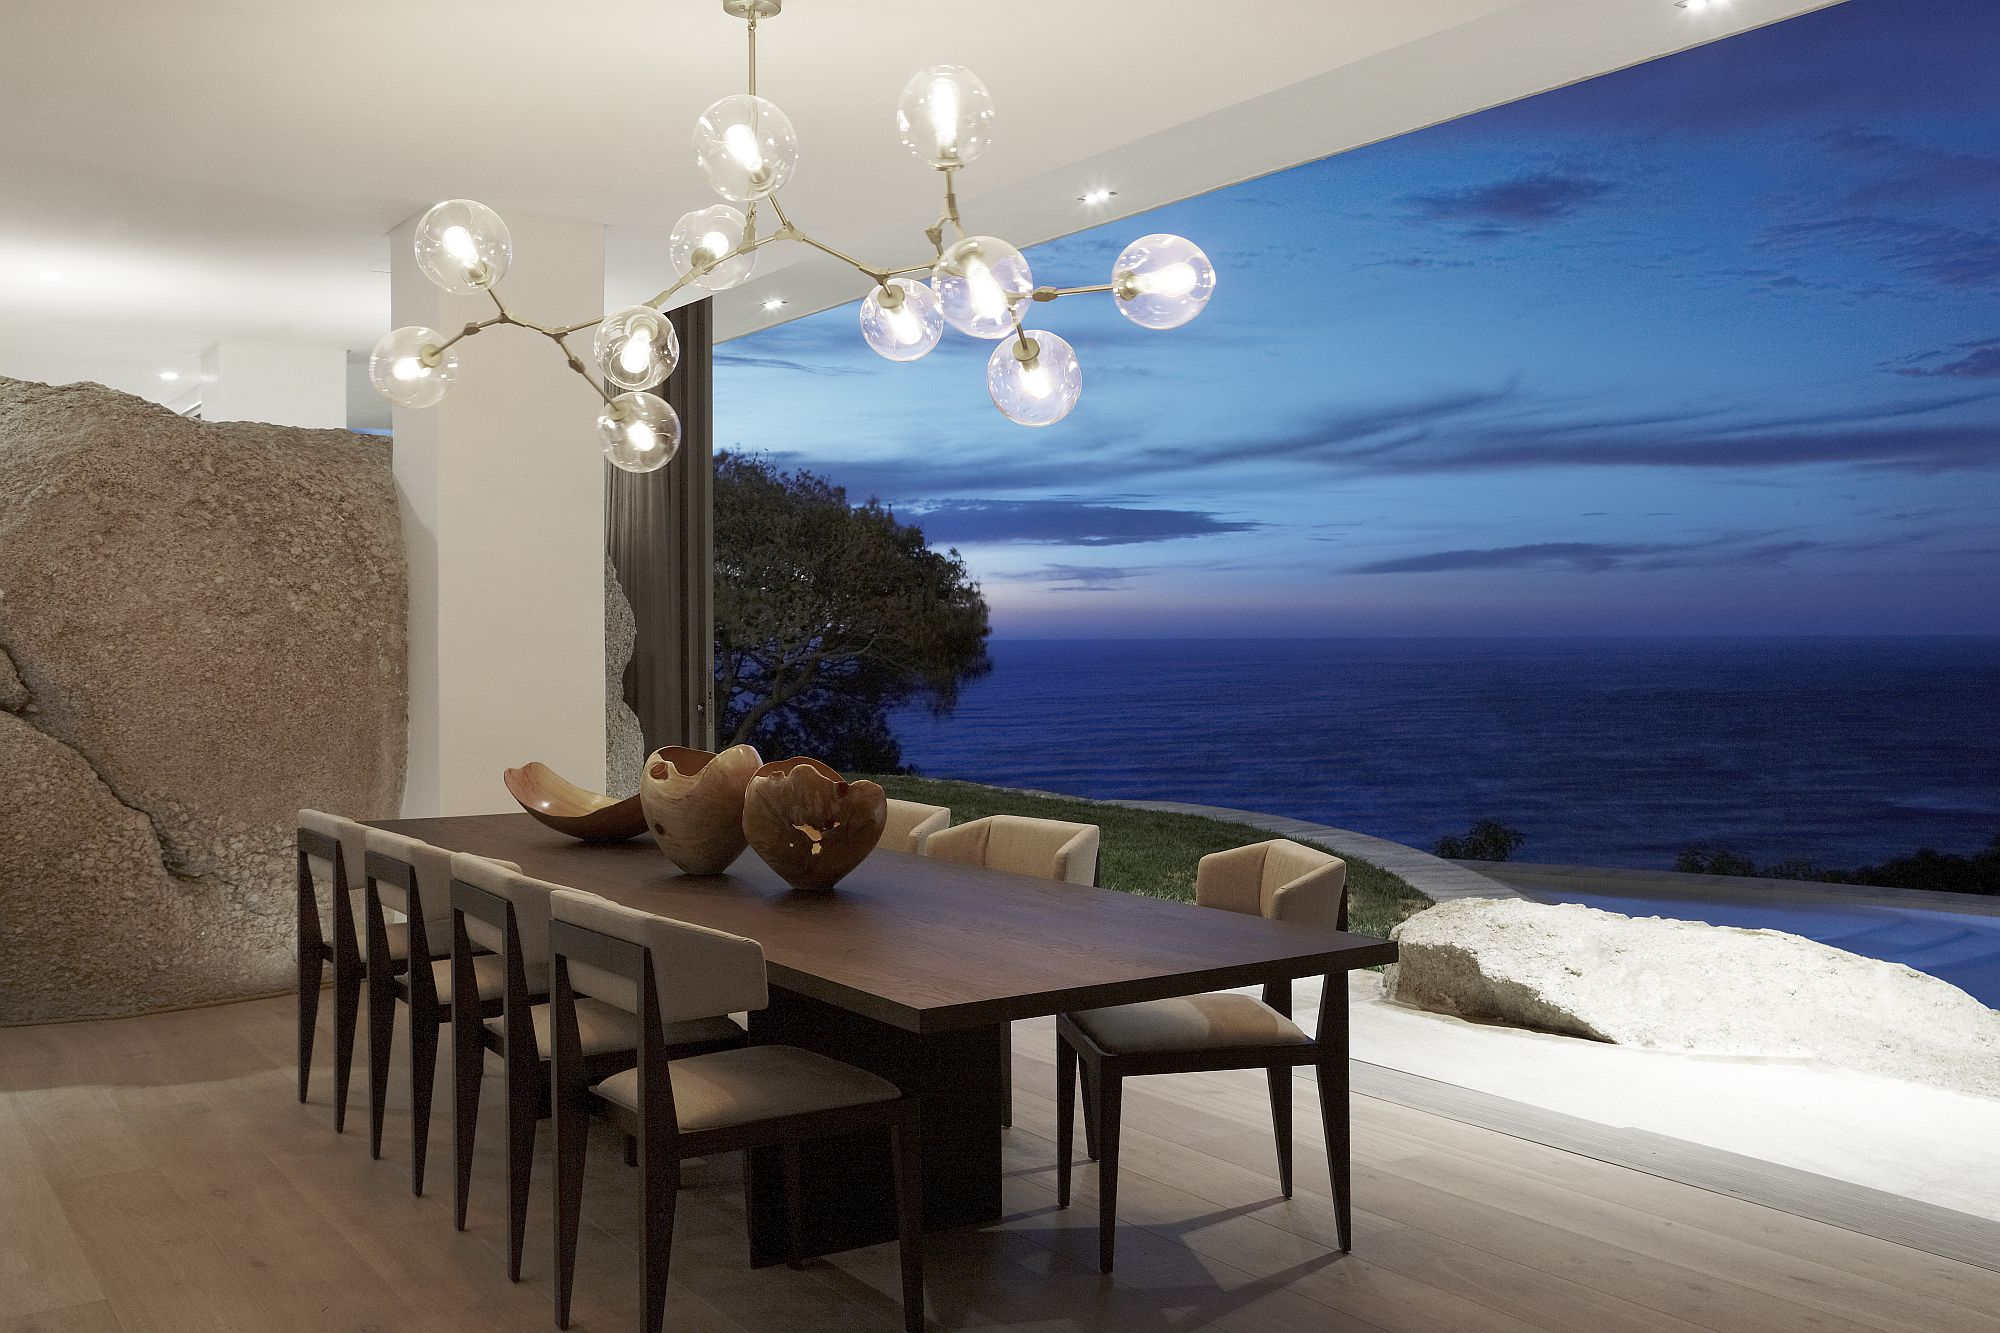 Sun, Surf and natural beauty become a part of the amazing home